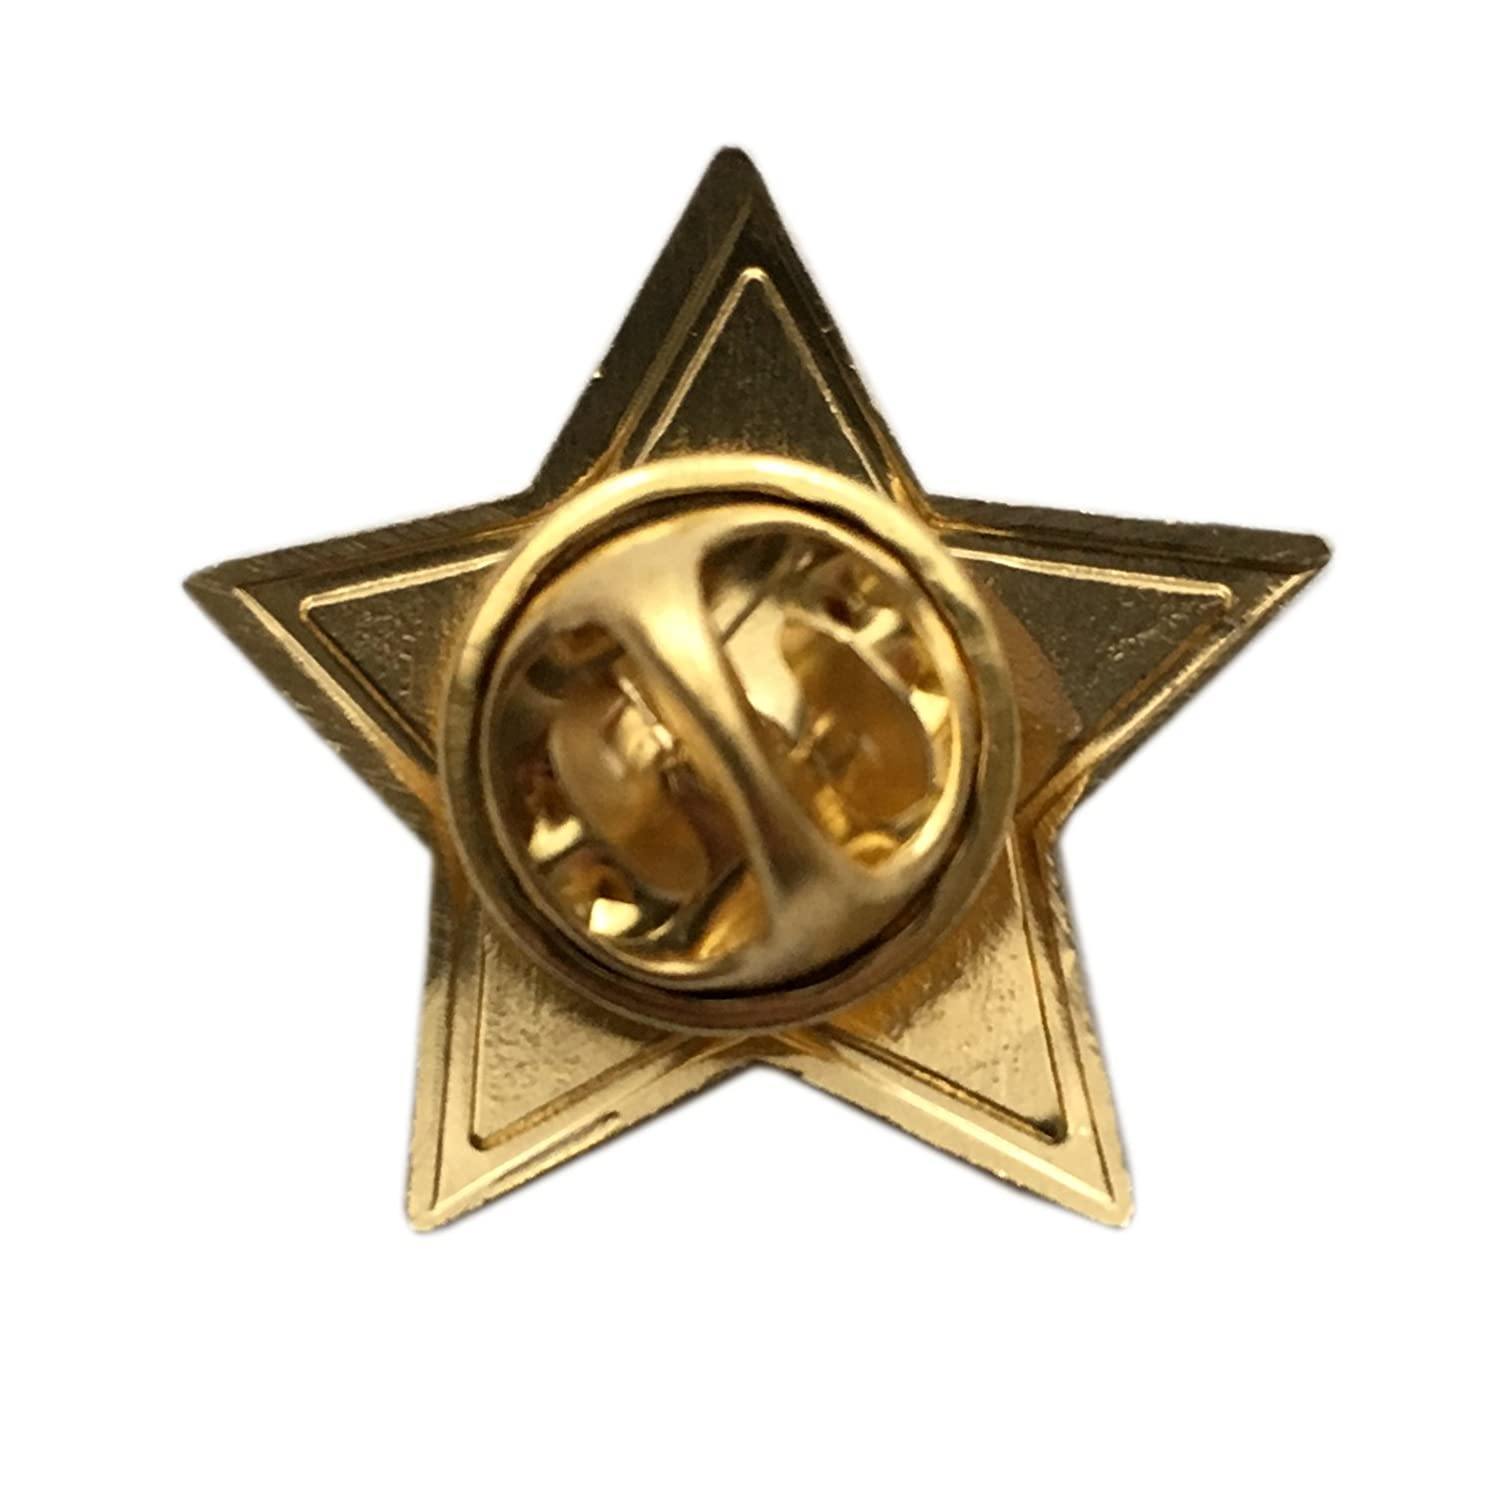 Ganwear® Soviet USSR Russian Army Military Small RED Star Ushanka Hat Cap  Beret Pin Badge Kokarda  Amazon.co.uk  Kitchen   Home 76782975312e